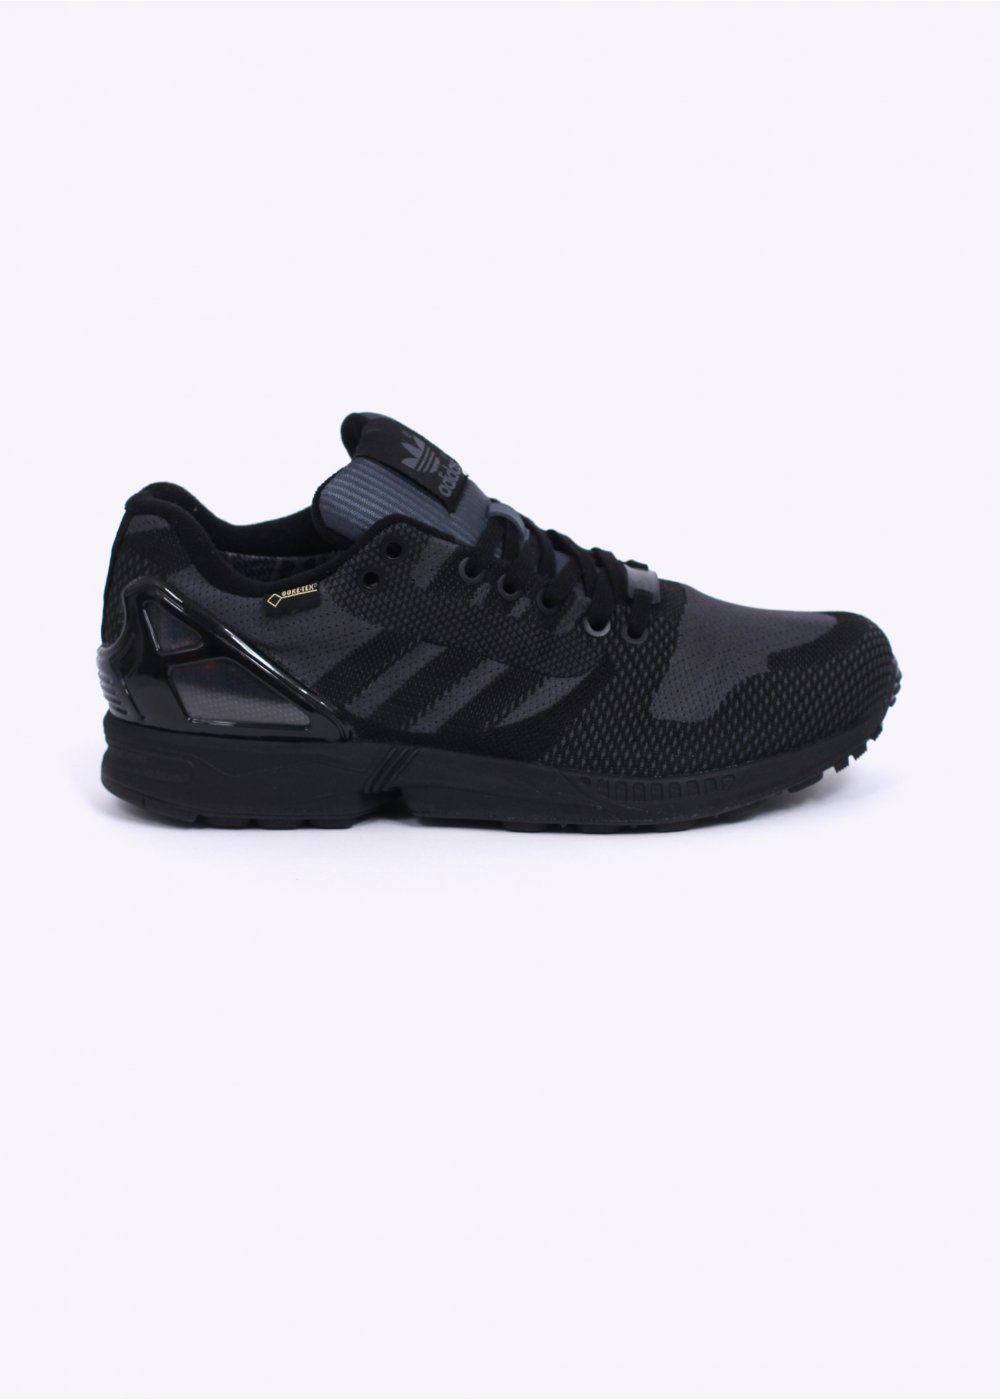 premium selection 62e9b 26036 ZX Flux Weave OG GTX Gore-Tex Trainers - Black   Black